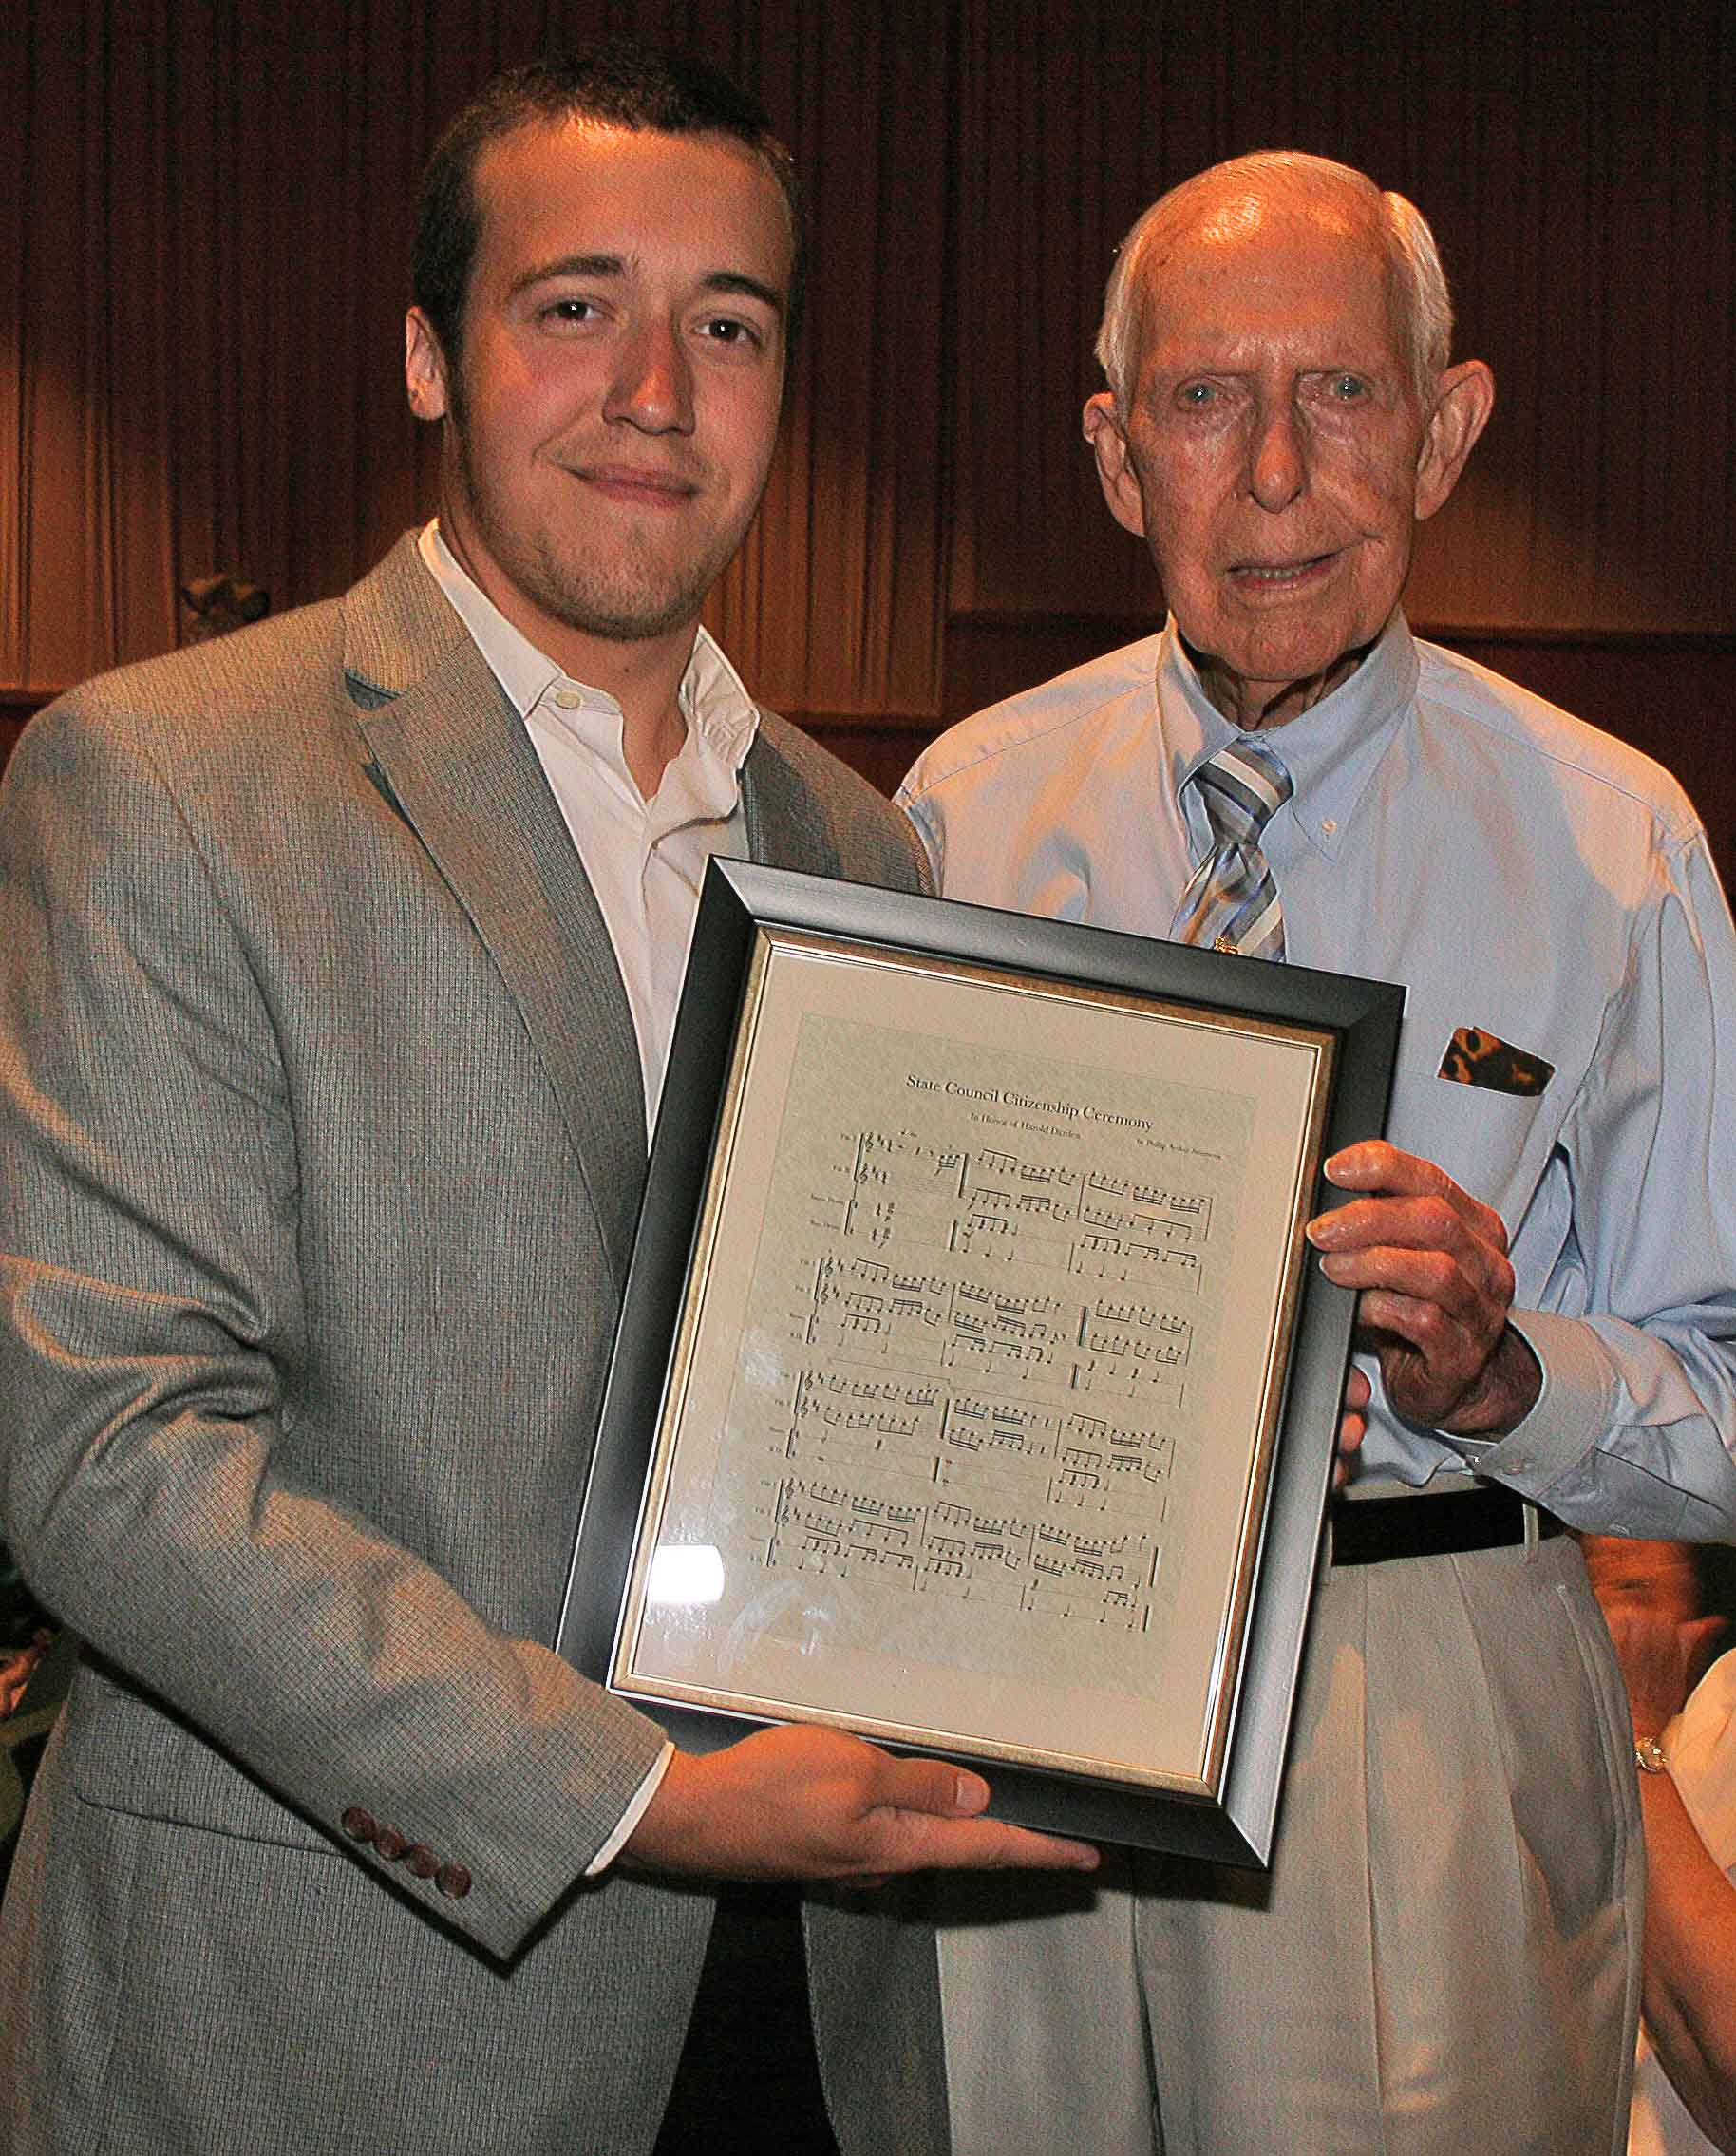 Former Spaulding County 4-H Club Member Phillip Simmons presents former Georgia 4-H State Leader Harald Darden with the sheet music that he wrote for the clubs State Council Citizenship Ceremony, which Darden created in 1959.